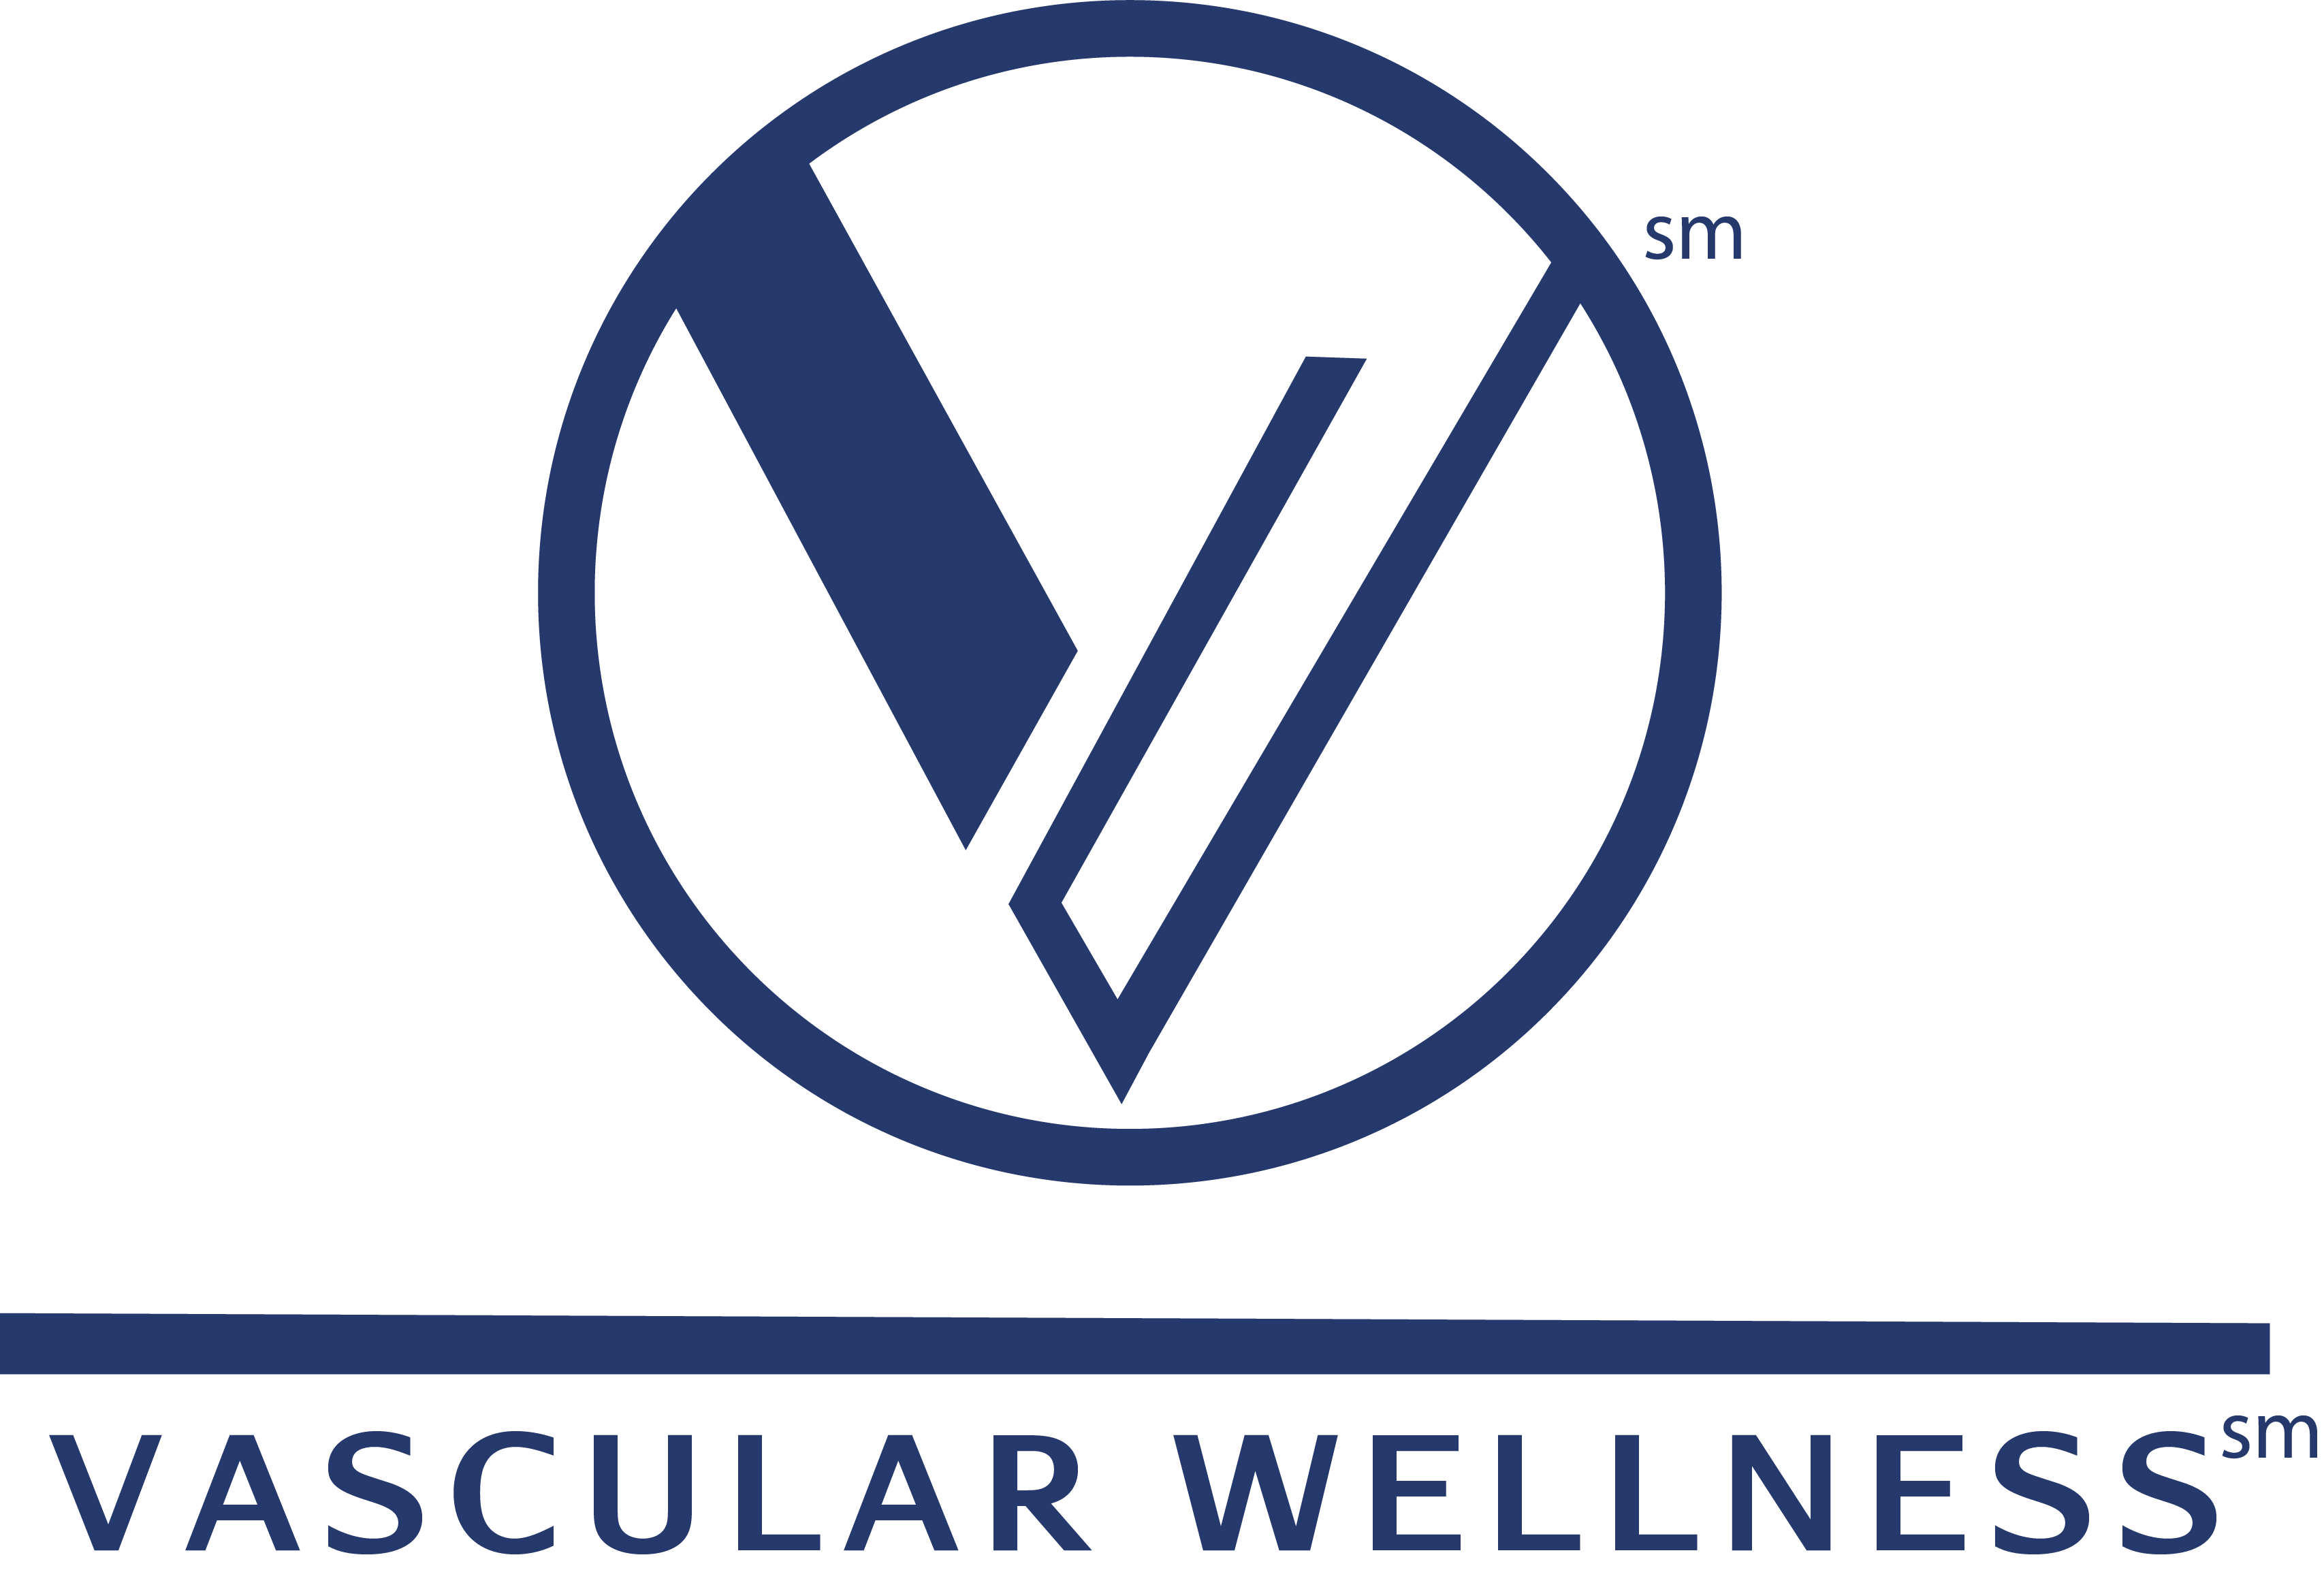 Vascular Access Services